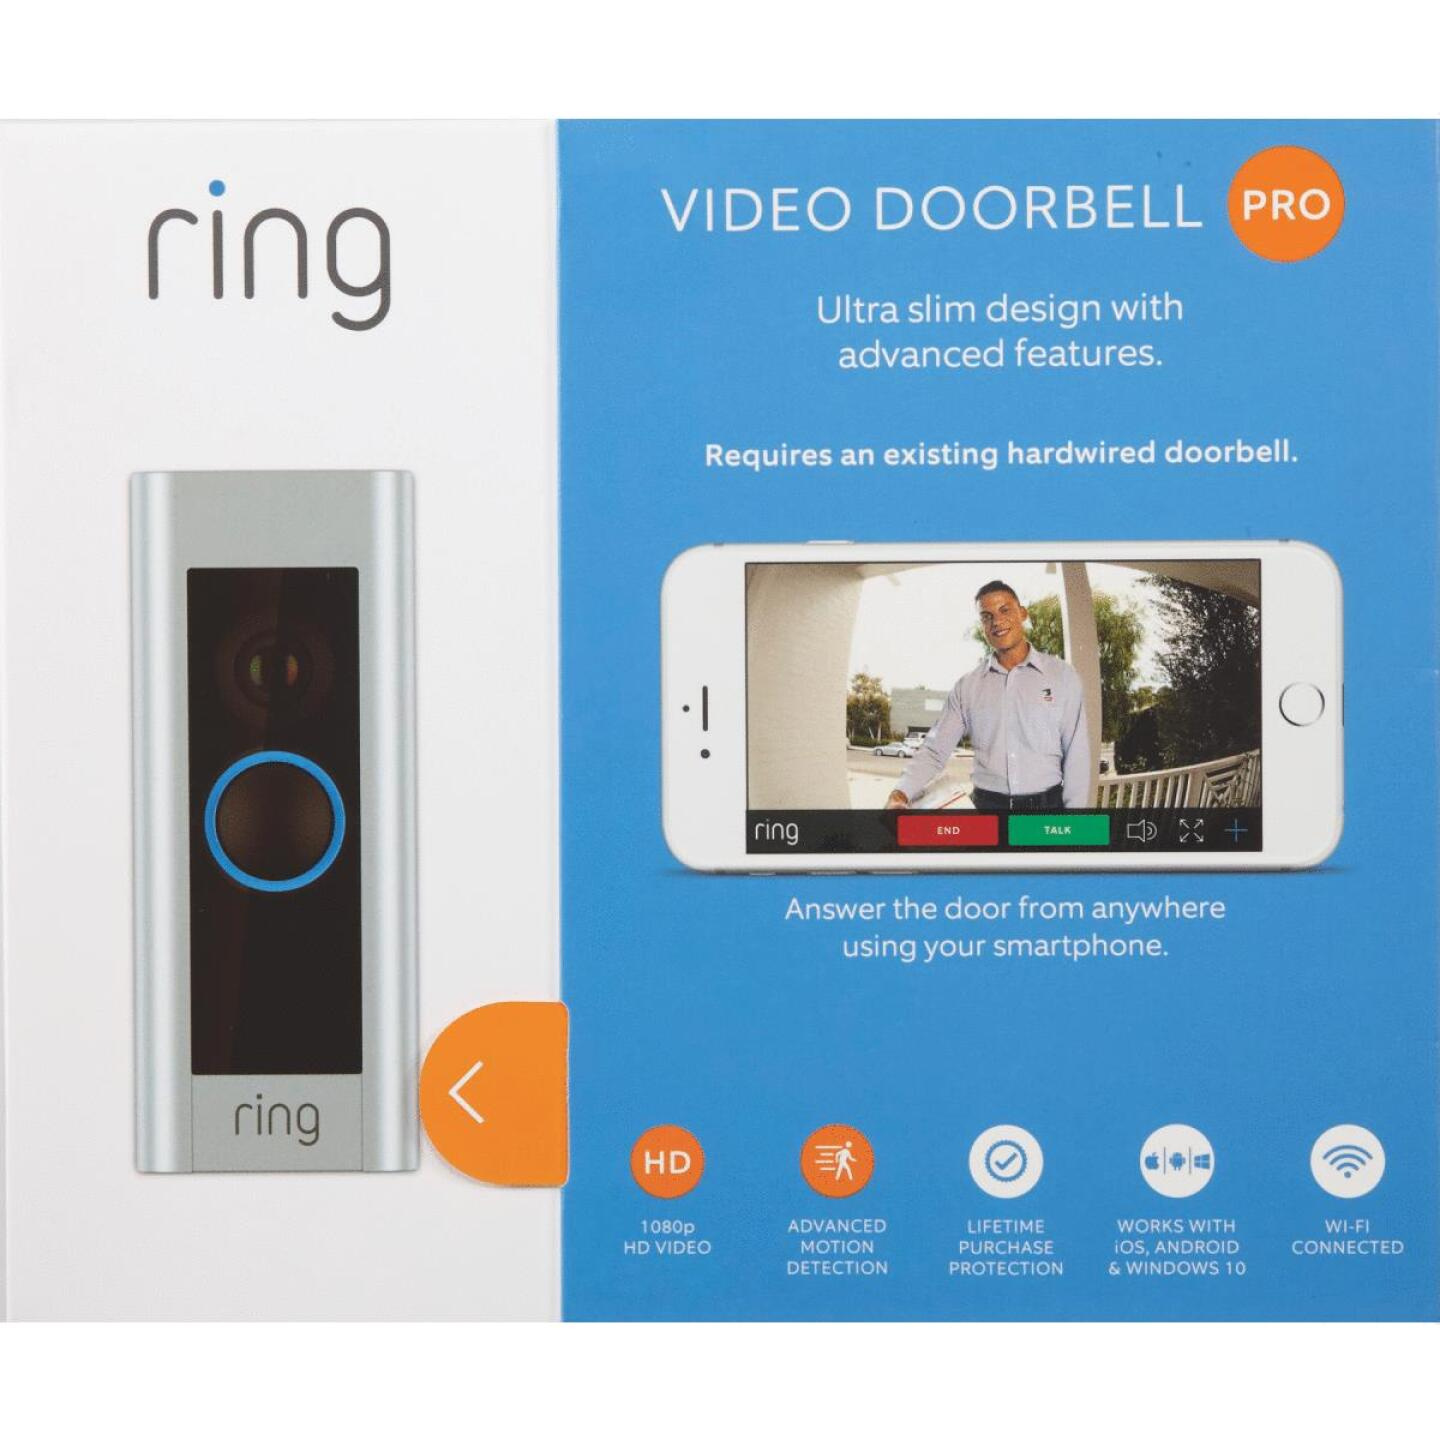 Ring Assorted Color Hardwired Video Doorbell Pro Image 2